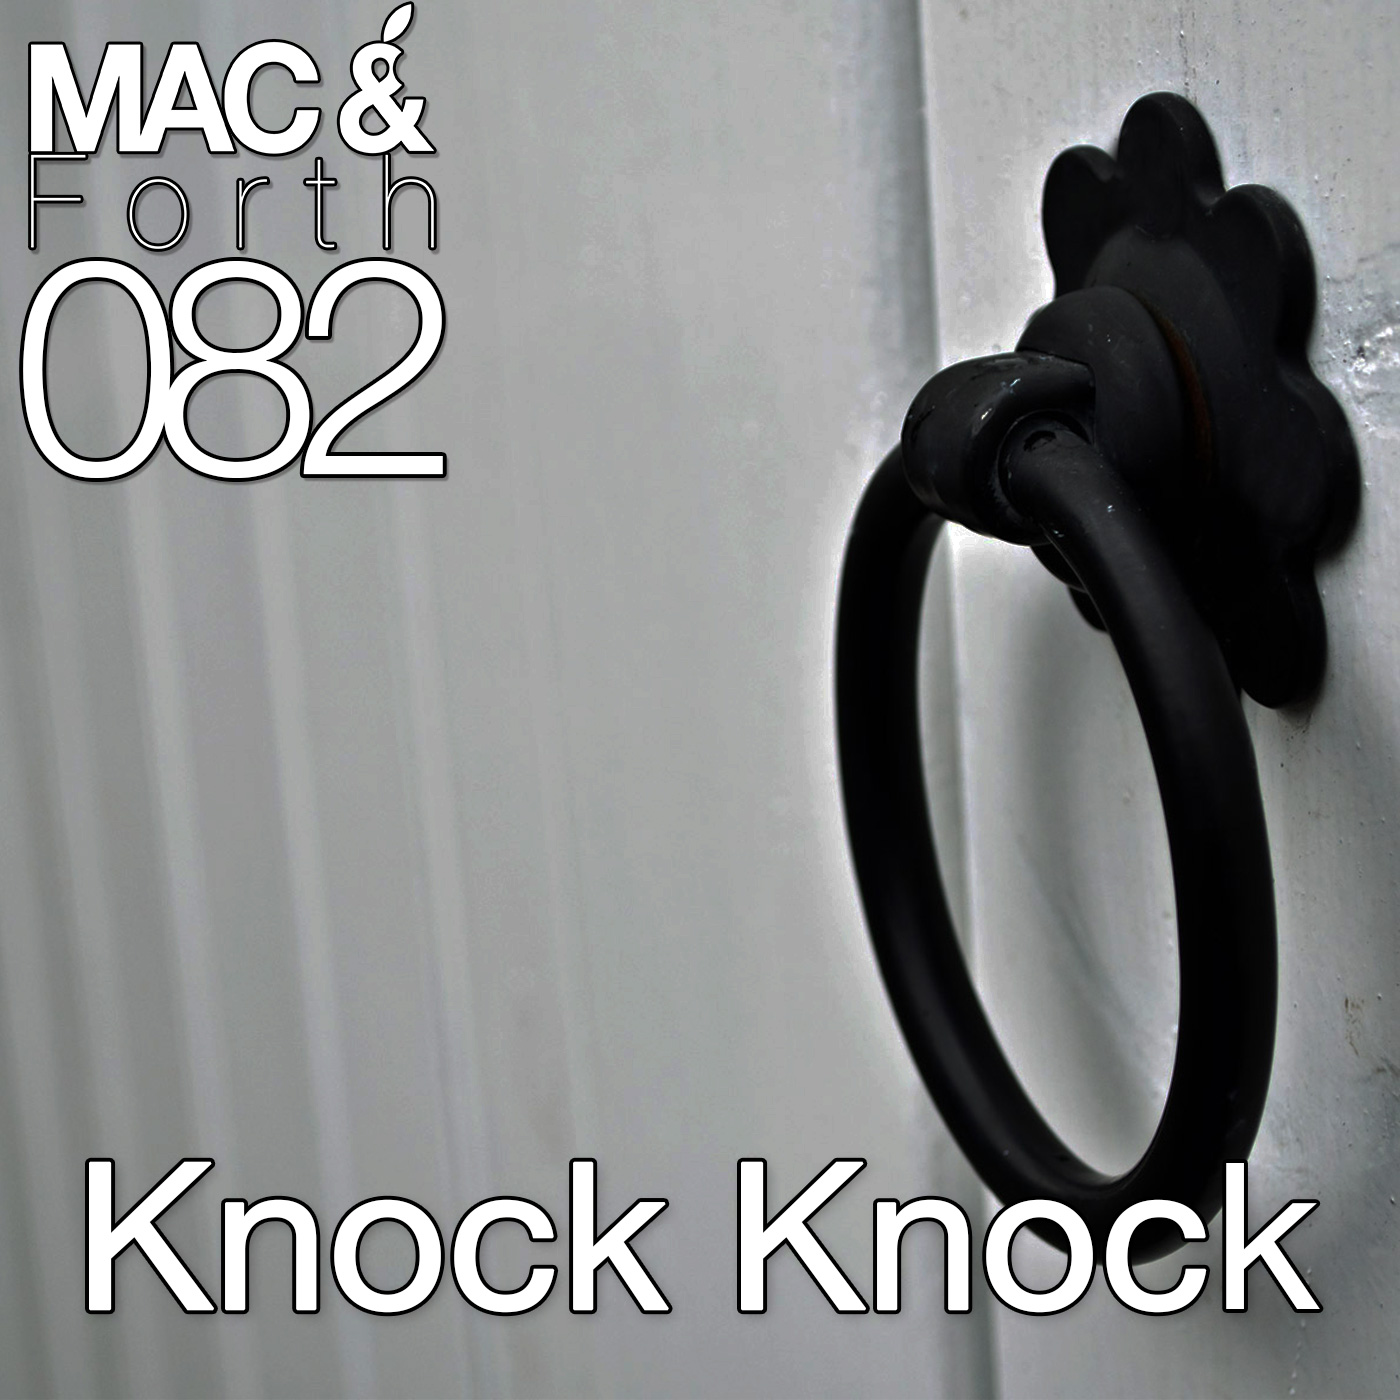 The Mac & Forth Show 082 - Knock Knock